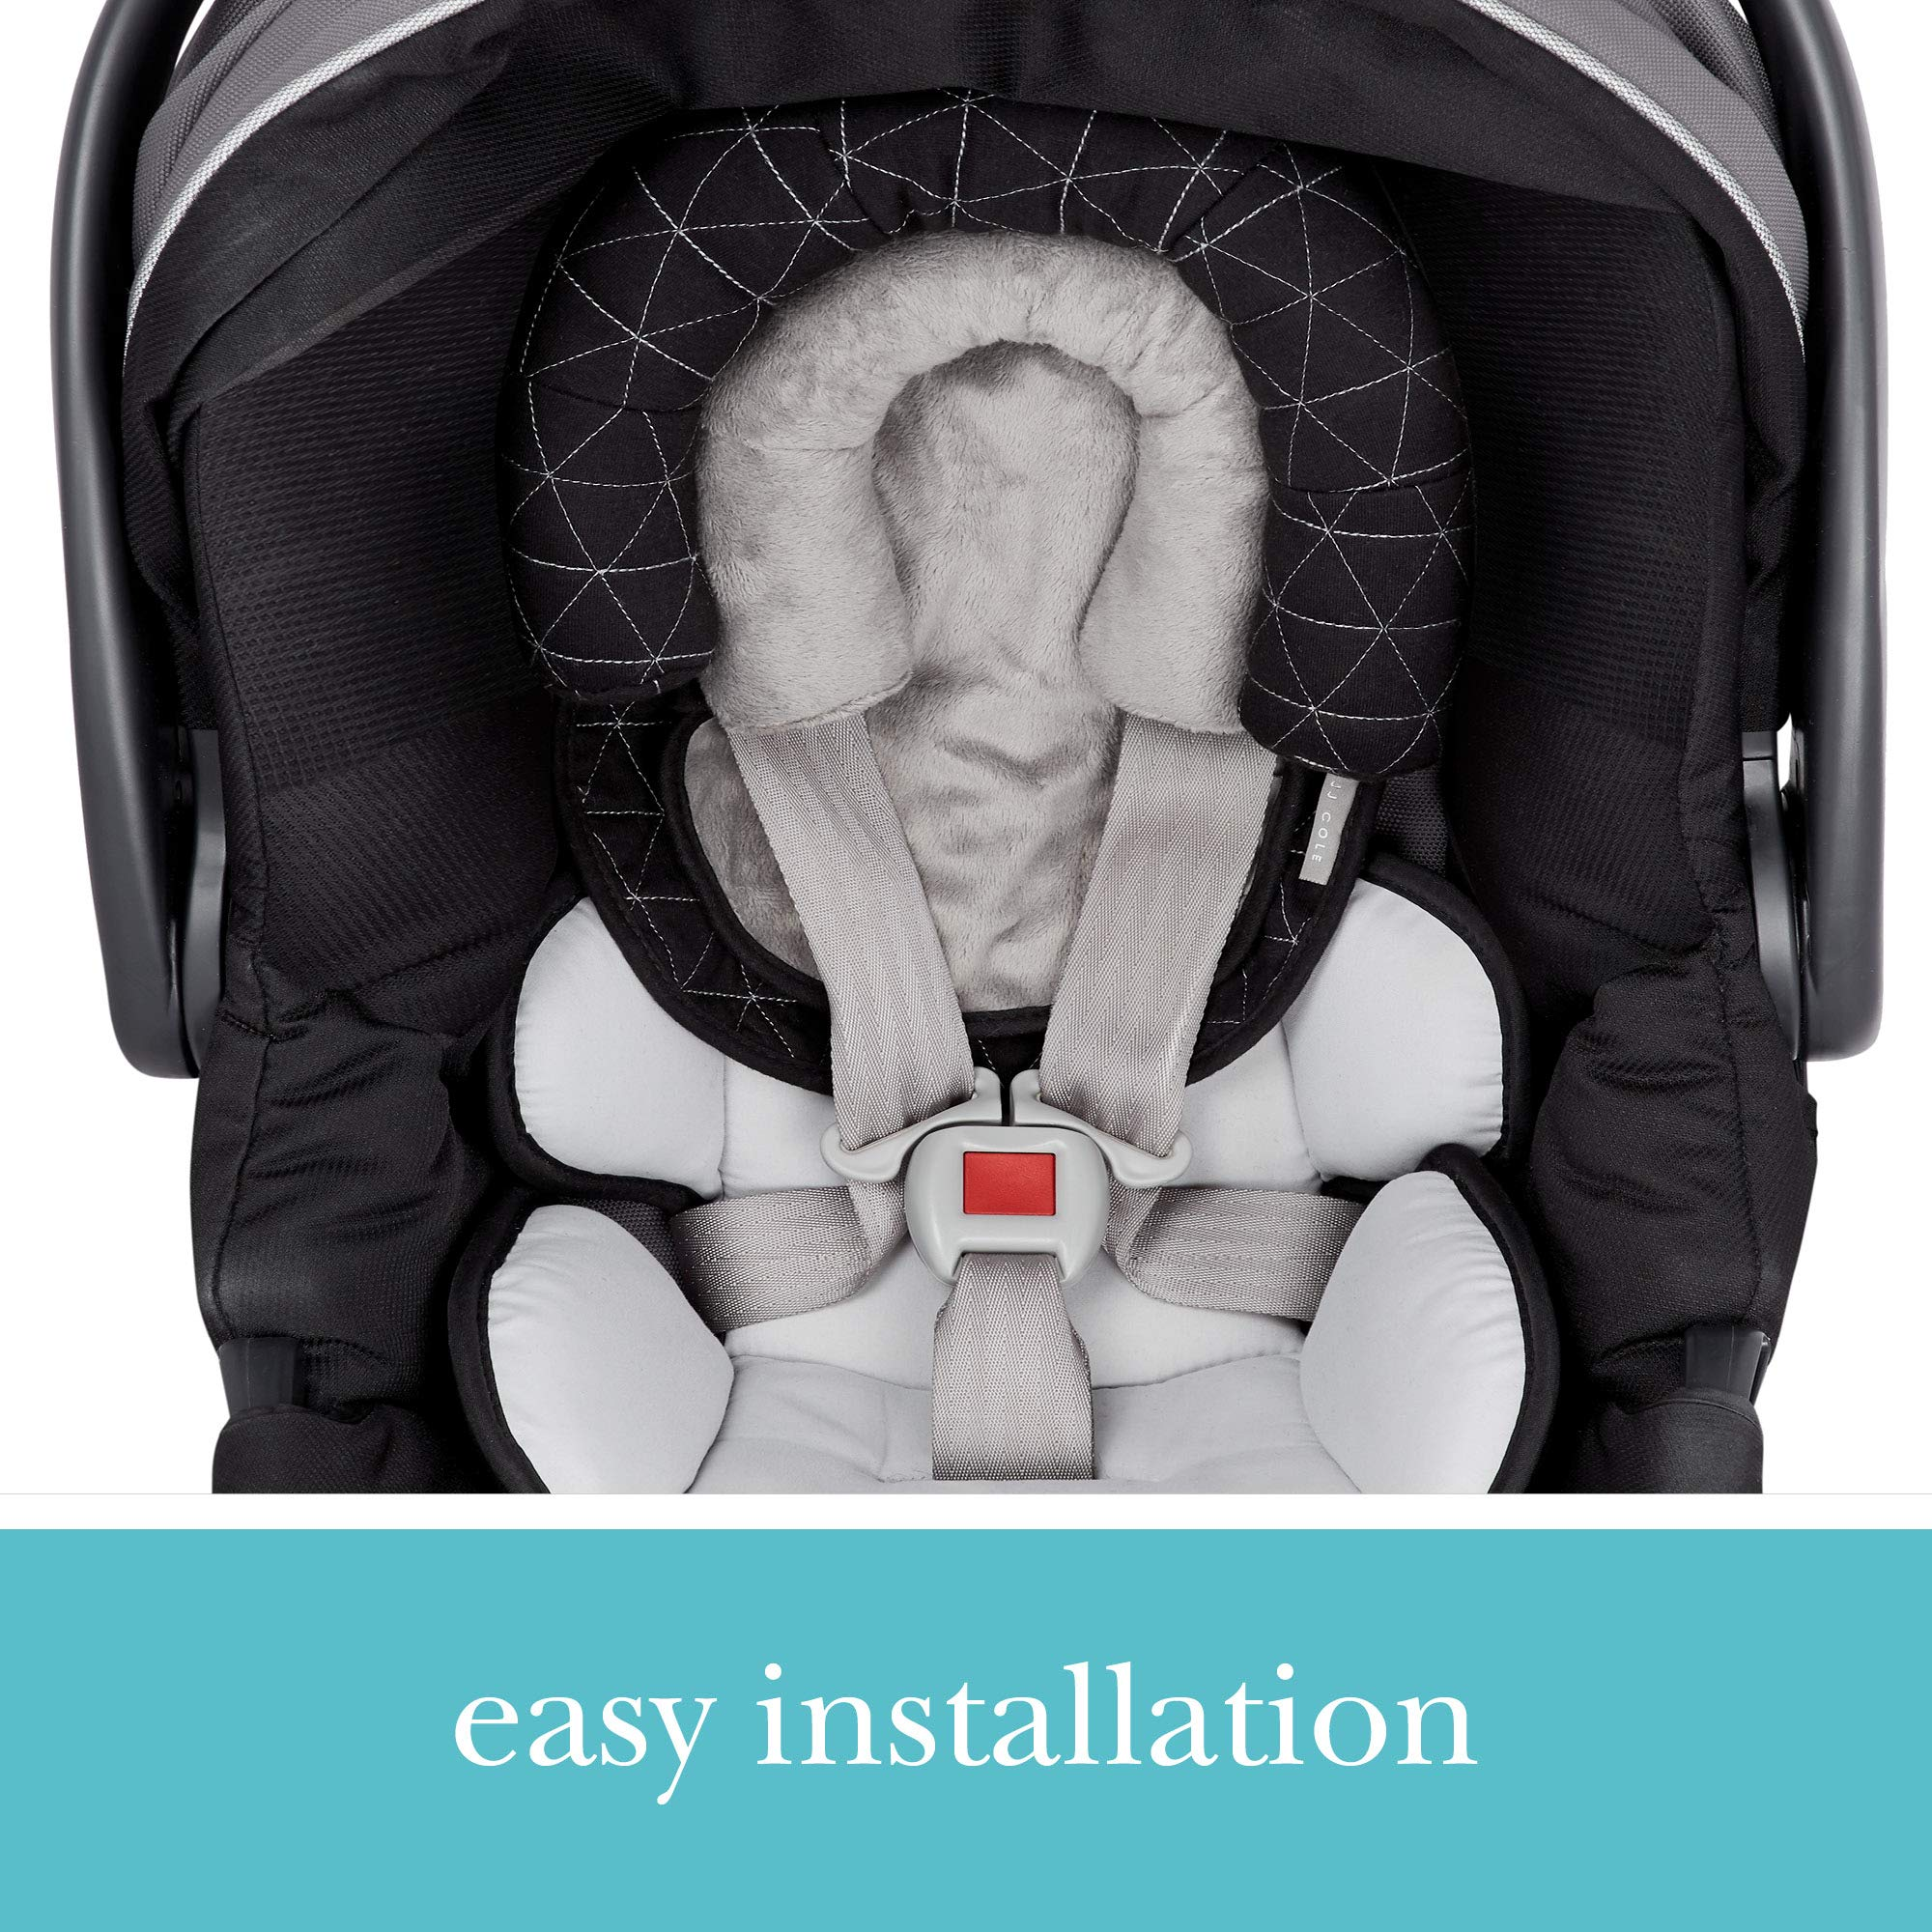 JJ Cole - Head Support, Newborn Head and Neck Support for Car Seat and Stroller, Designed to Adjust with Age, Black Tri Stitch, Birth and Up by JJ Cole (Image #3)